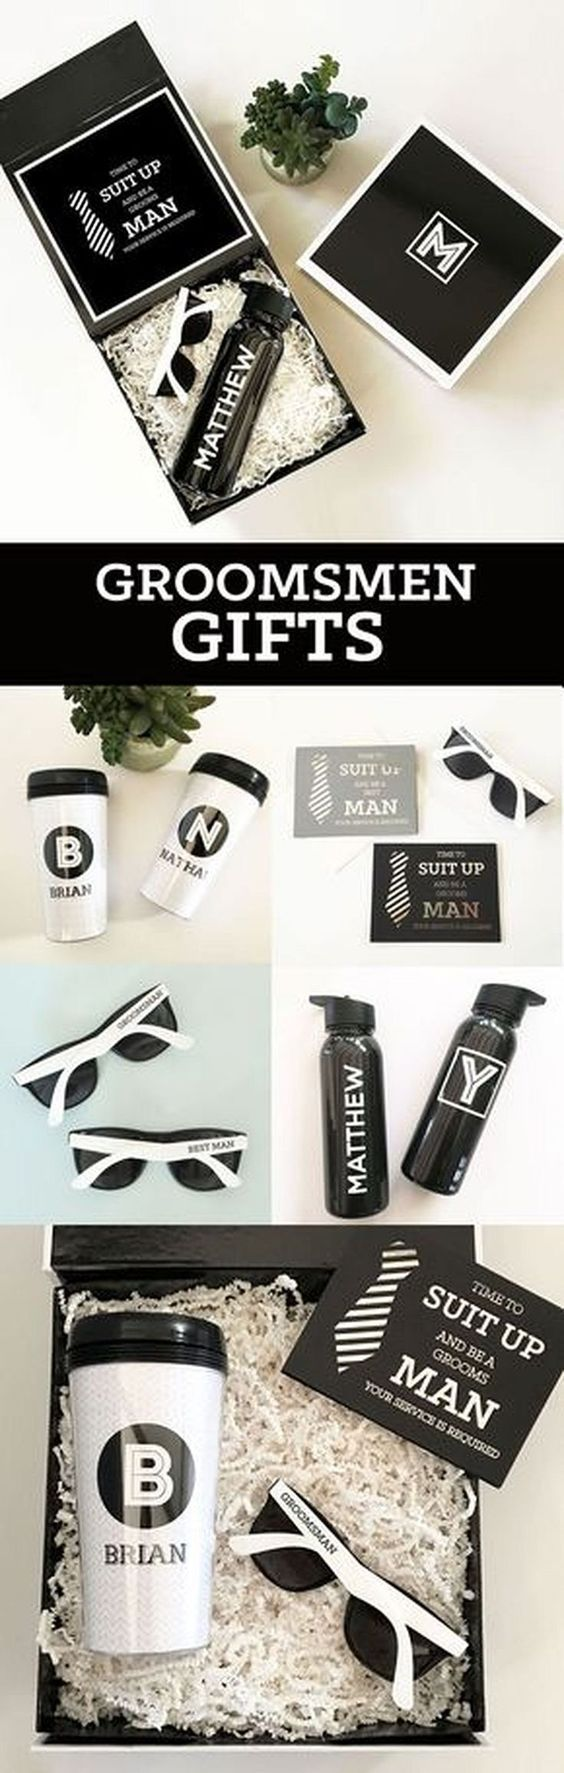 "cool 228 Groomsman Gift Ideas https://weddmagz.com/228-groomsman-gift-ideas/ [ ""Carefully designed Groomsmen Gifts for the modern men in your bridal party. Most gifts can be personalized or monogrammed with the groomsman or best mans name."" ] # # #Grooms #Men #Gifts, # #Gifts #For #Groomsmen, # #Be #My #Groomsman, # #Man #Gifts, # #Party #Gifts, # #Wedding #Hairstyles, # #Wedding #Gifts, # #Wedding #Stuff, # #Dream #Wedding"